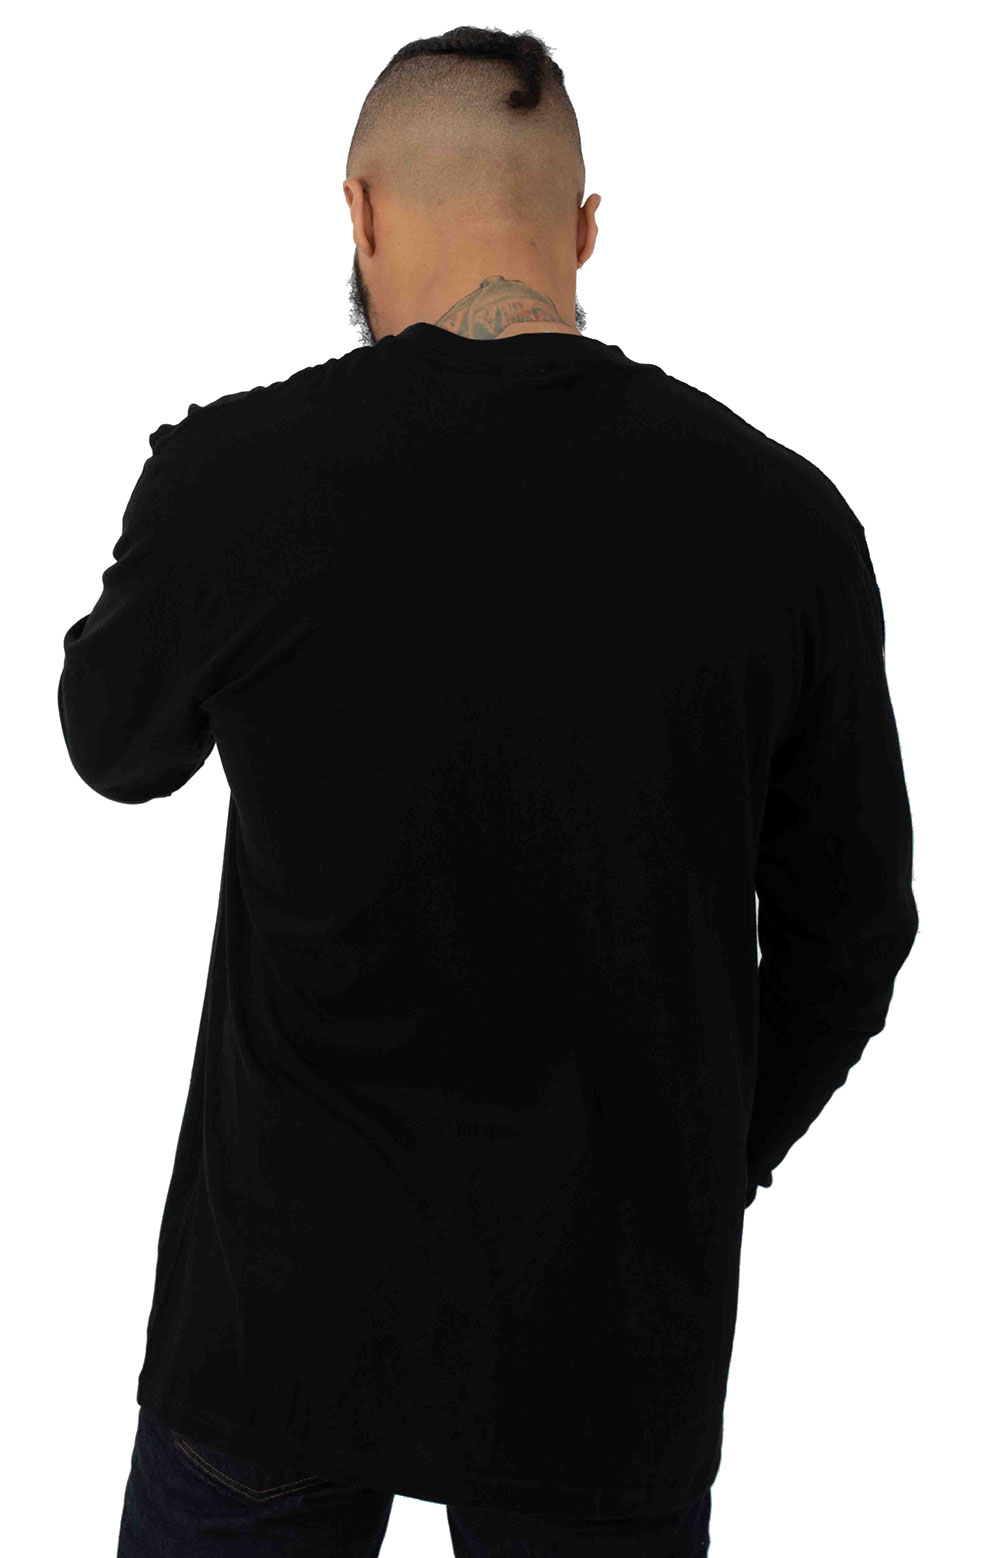 Lord Nermal Pocket L/S Shirt - Black 3